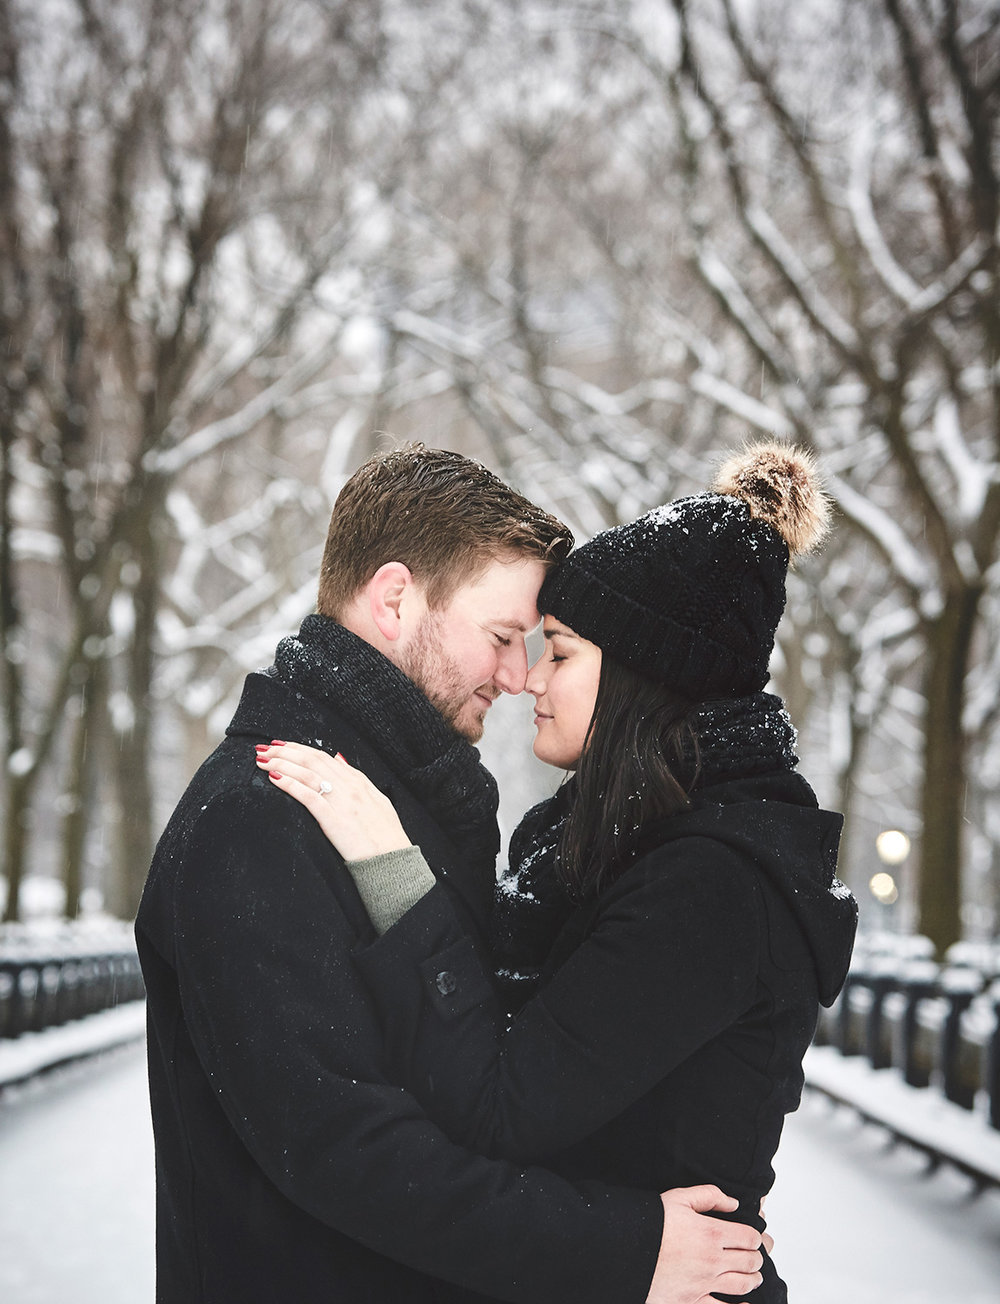 161217_SurpriseNYCProposal_CentralParkProposal_By_BriJohnsonWeddings_0039.jpg